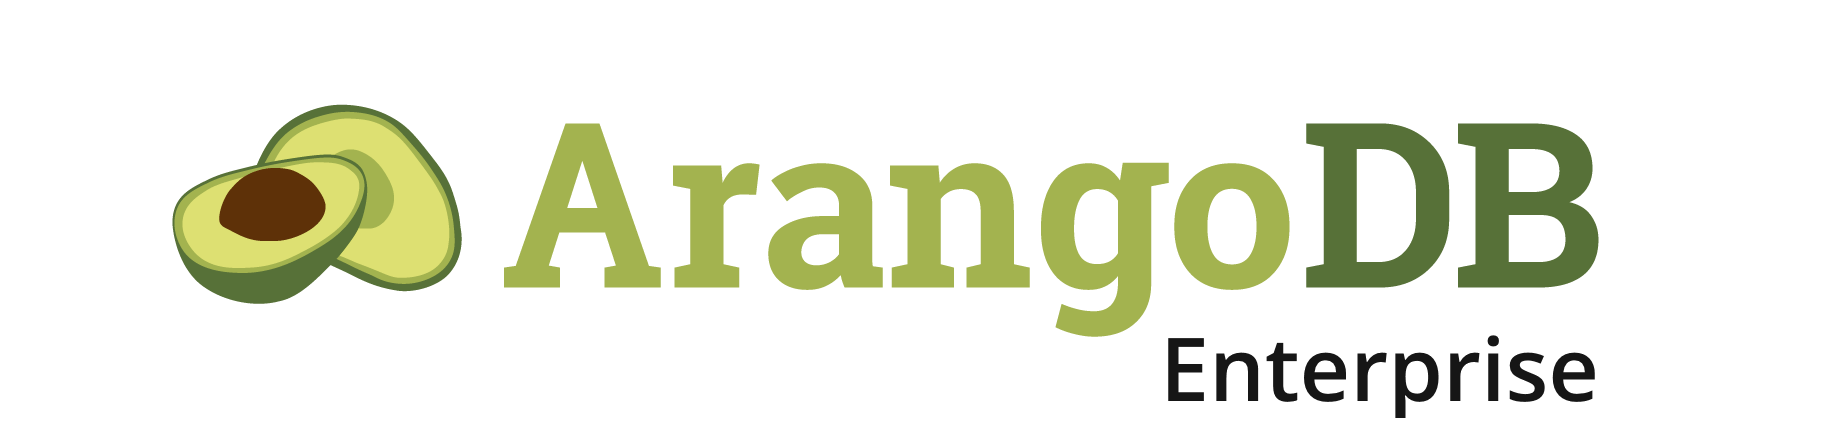 arangodb-enterprise-small